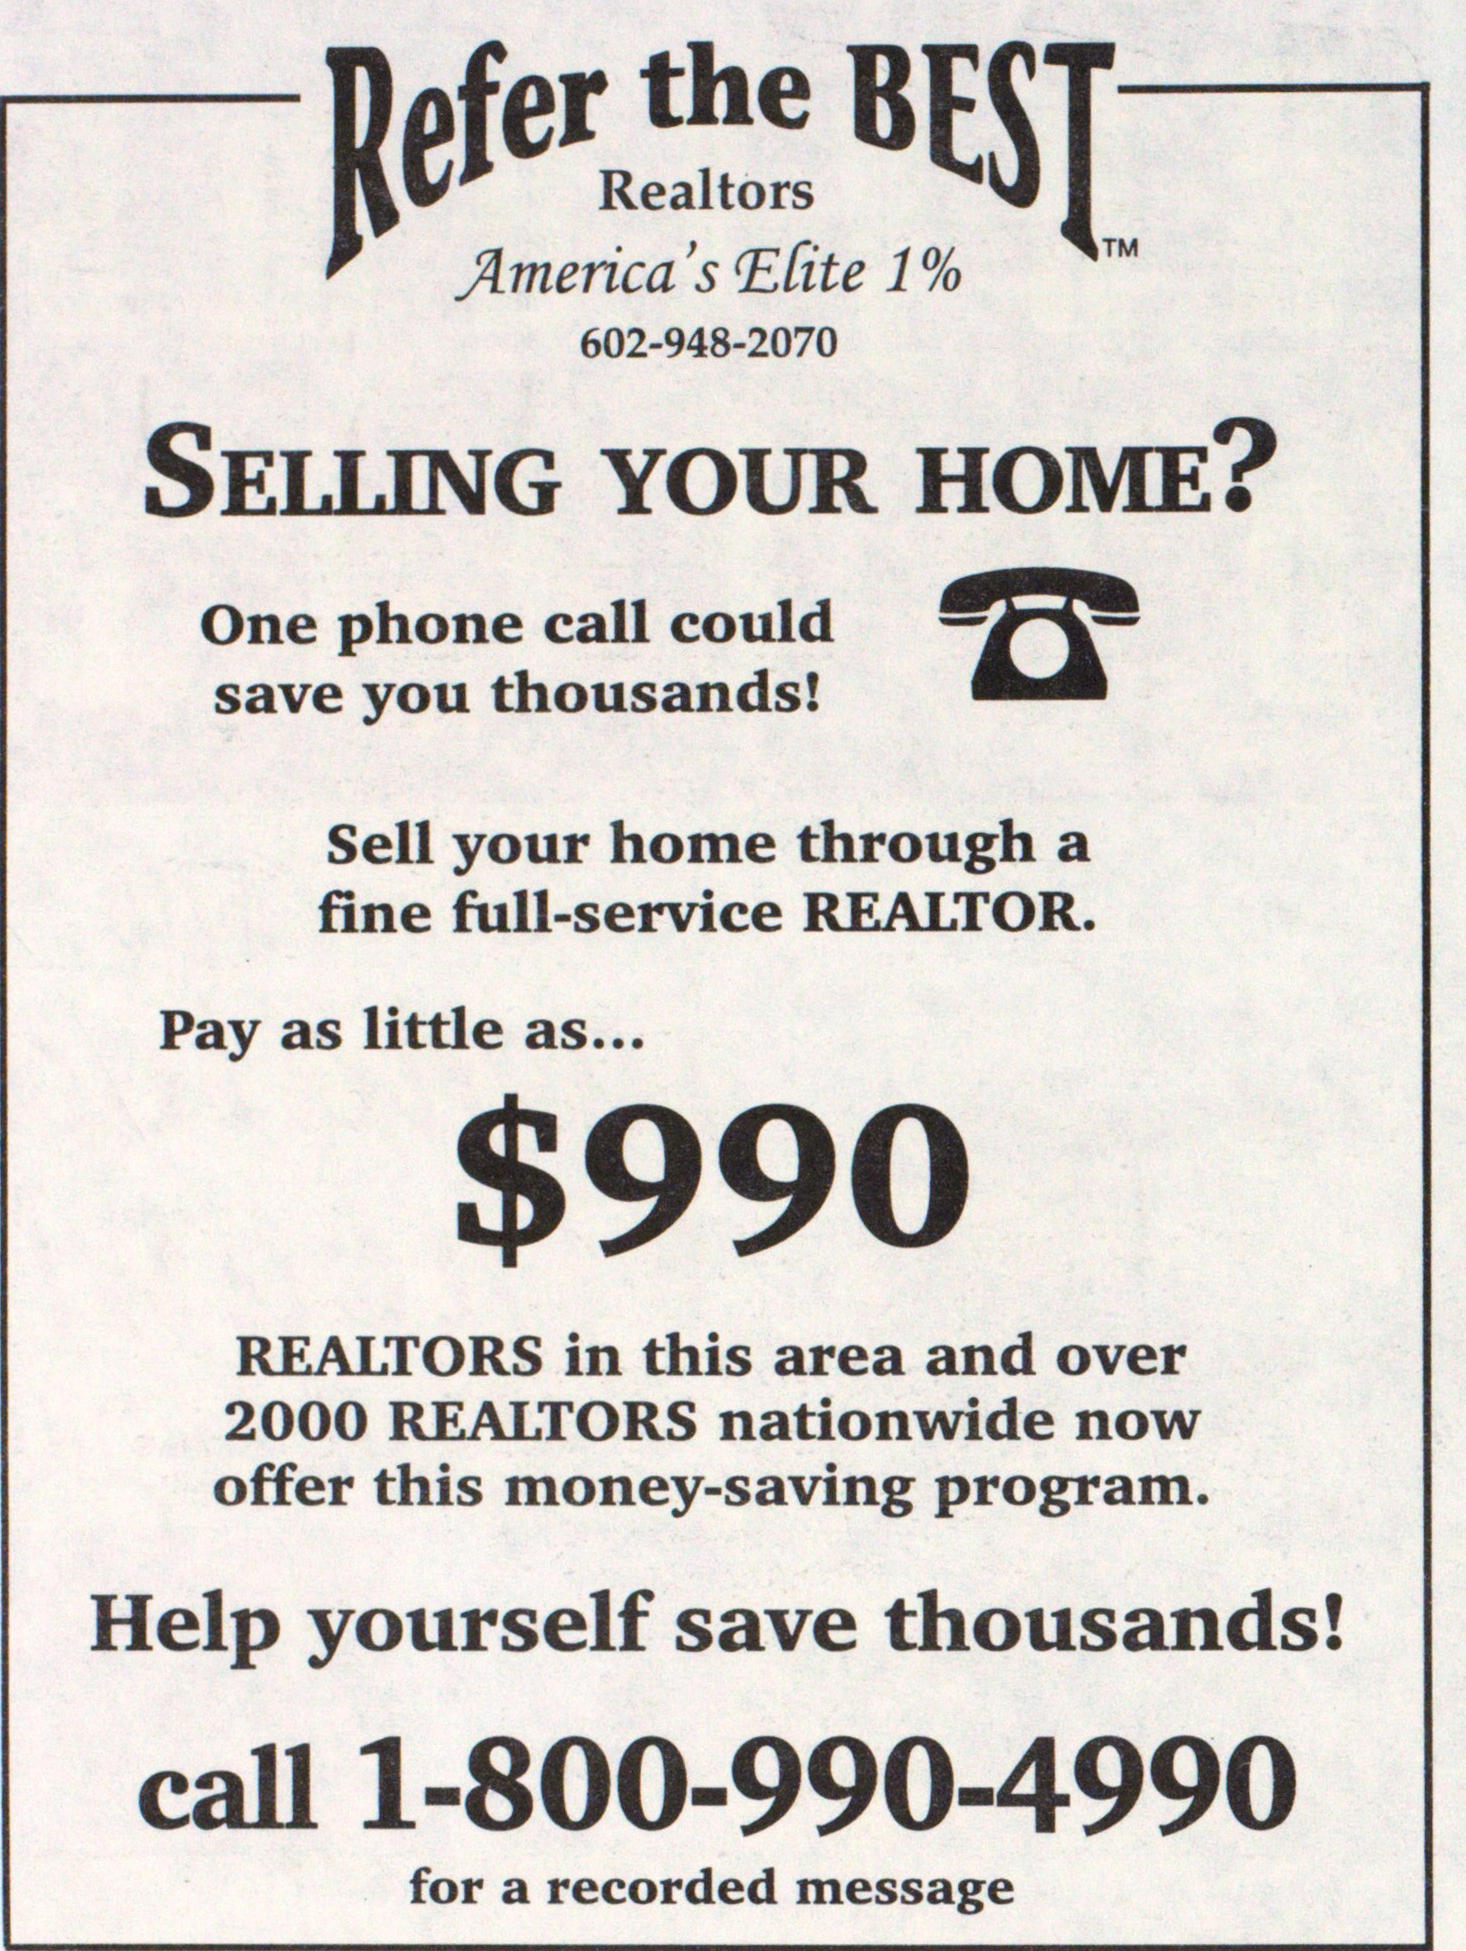 Refer The Best Realtors America's Elite 1% image